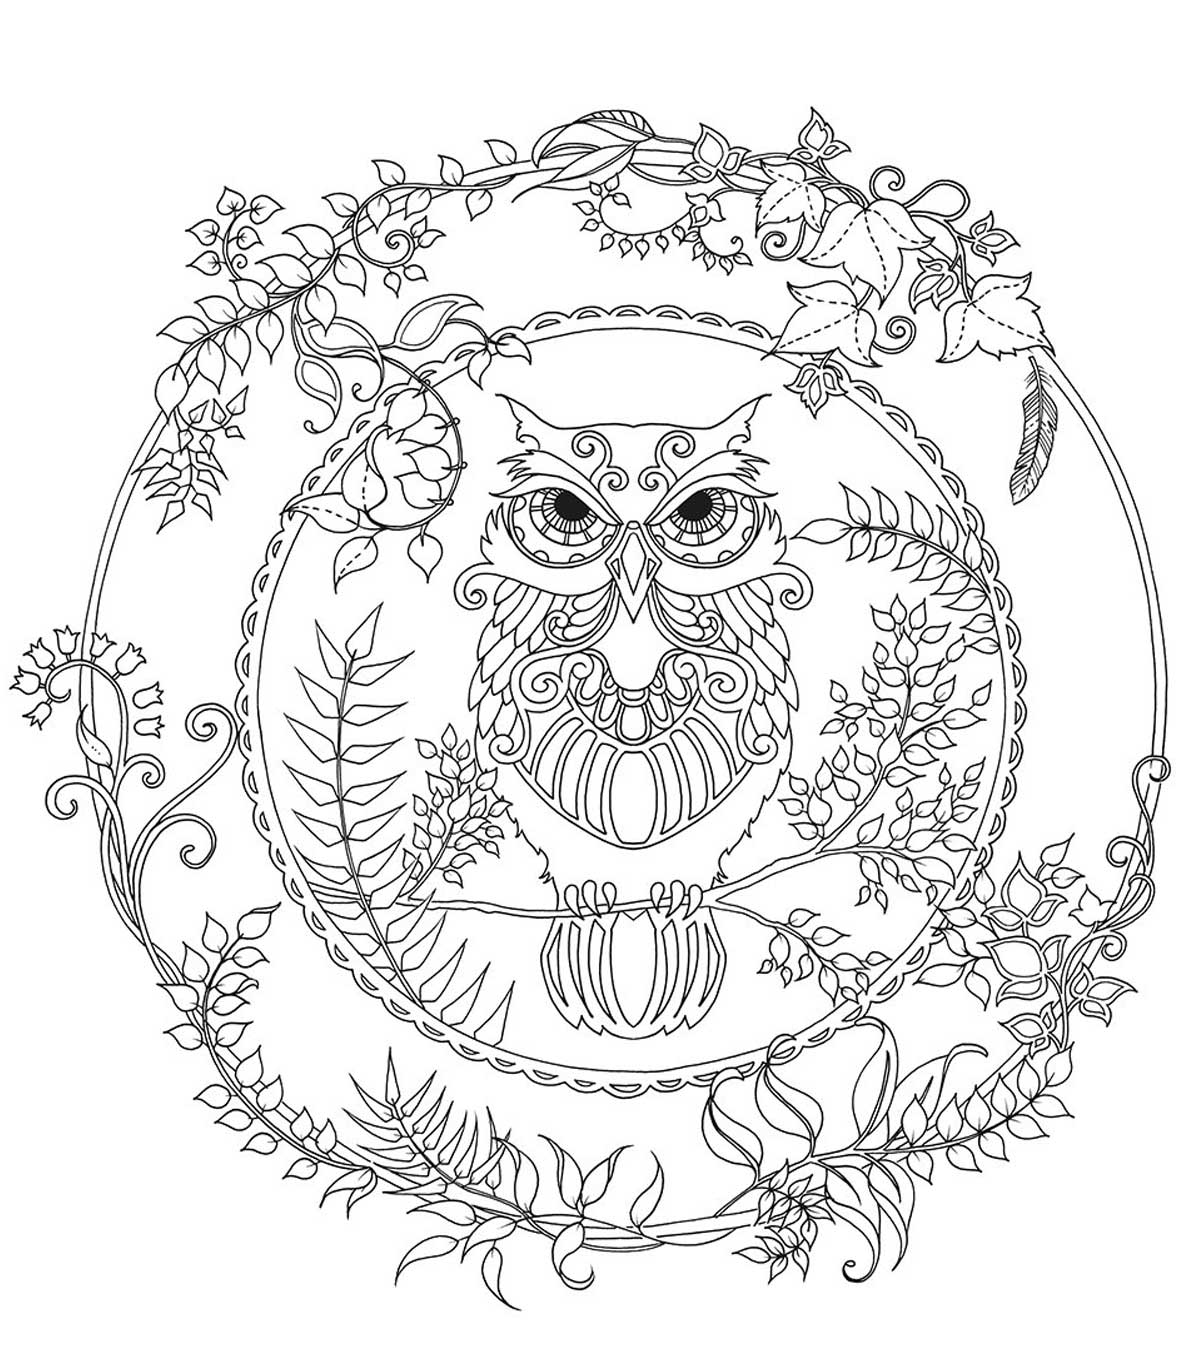 Coloring Books For Adults Enchanted Forest